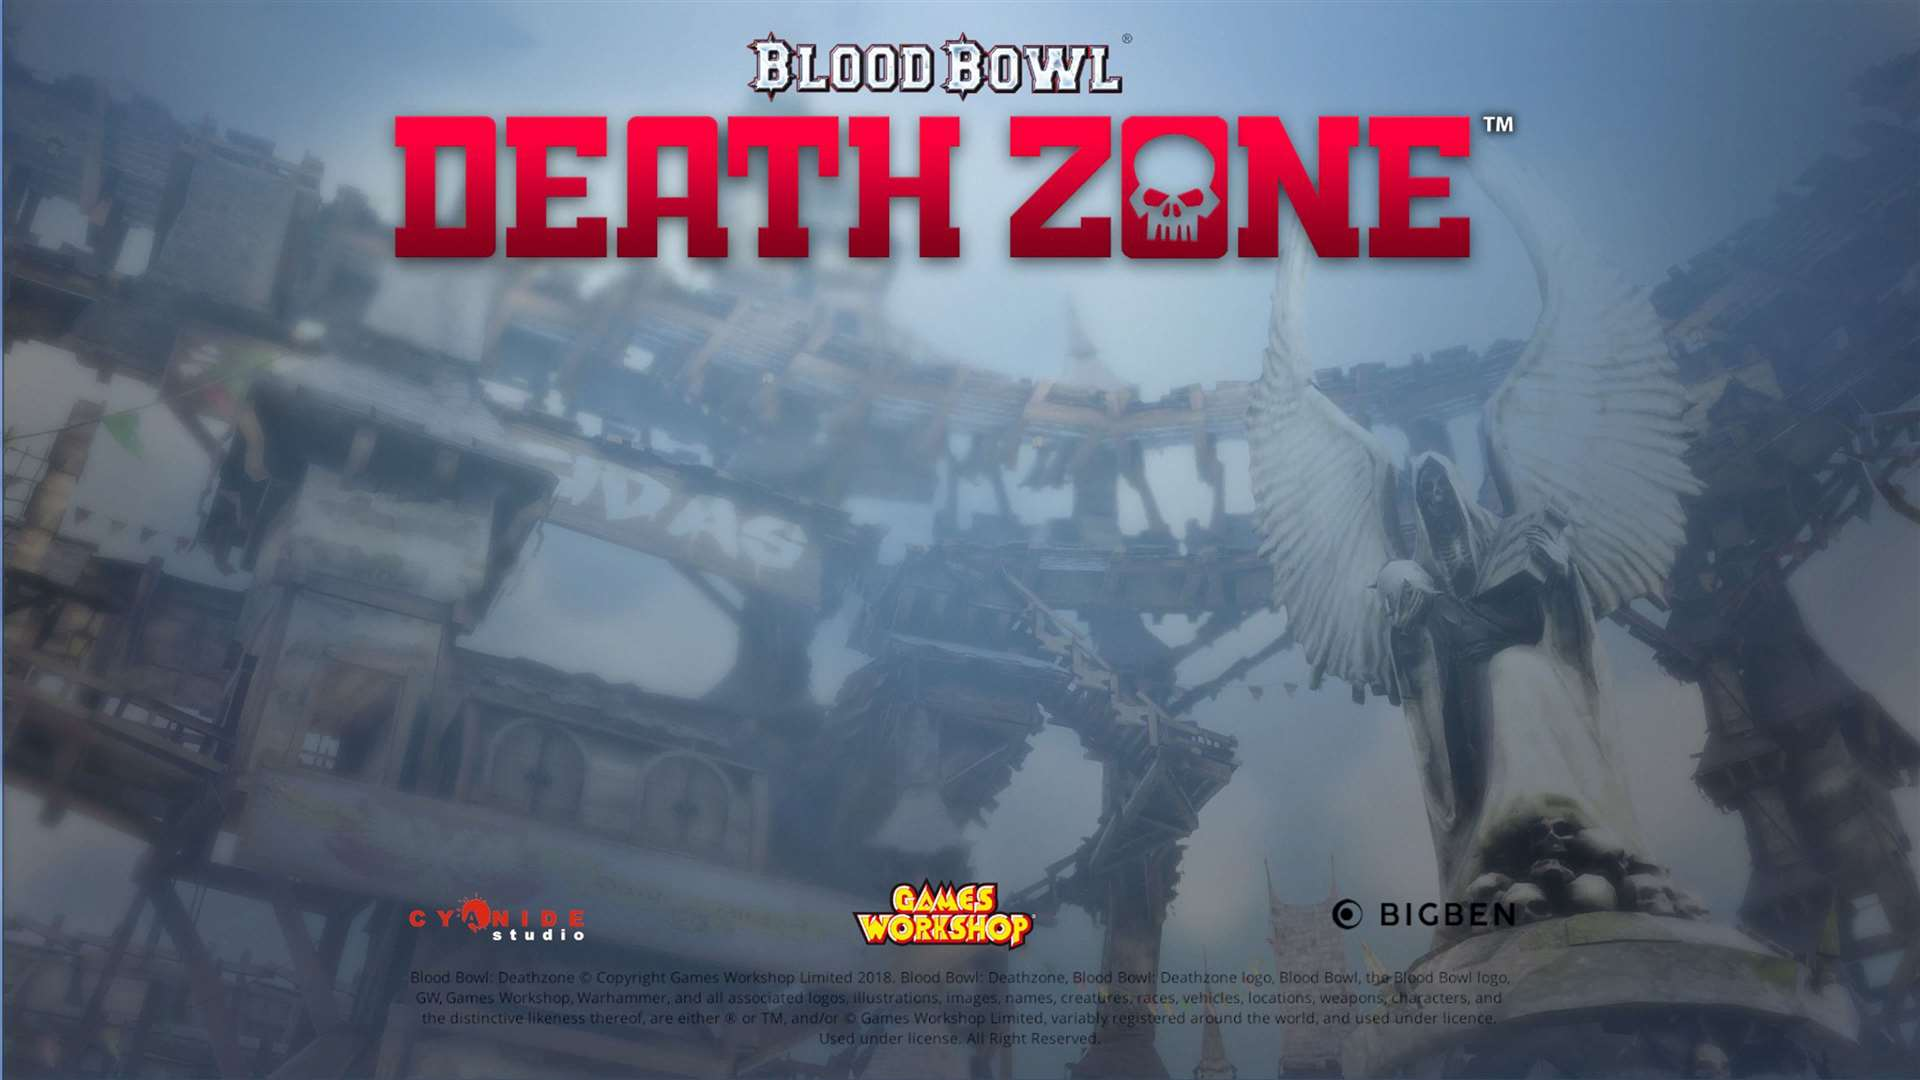 Blood Bowl: Death Zone. Picture: Handout/PA